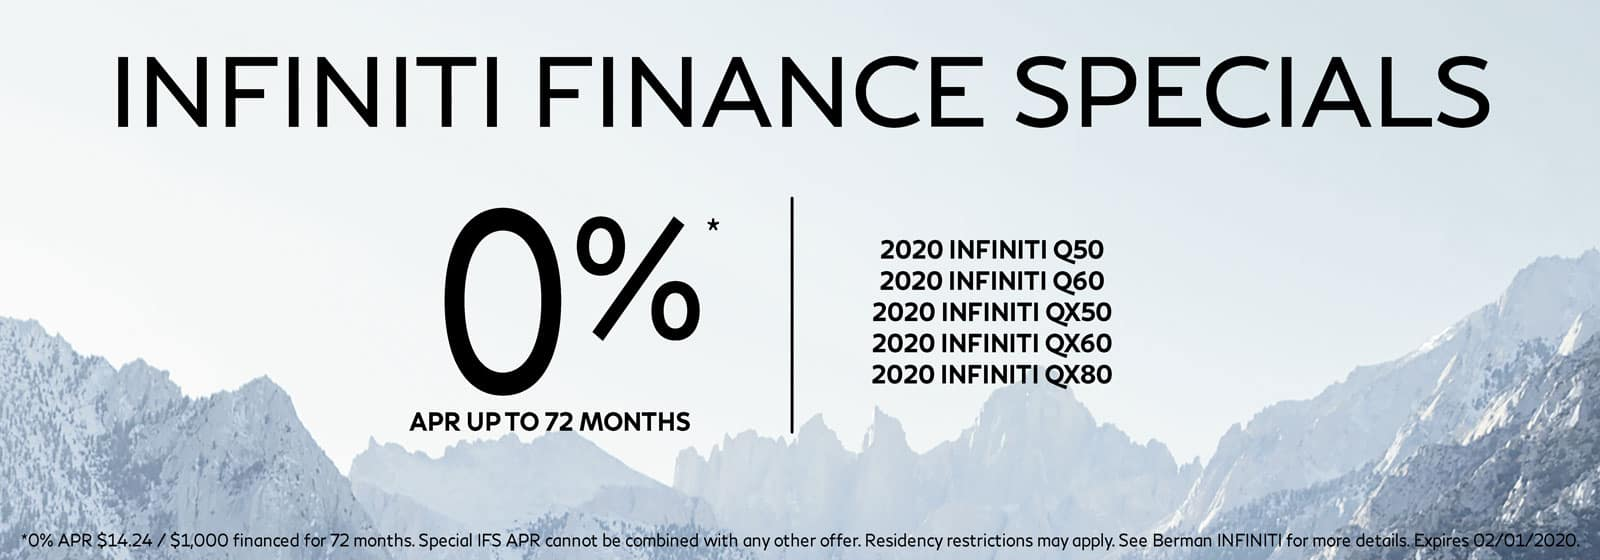 0% APR financing for up to 72 months on all 2020 INFINITI Models. For well-qualified buyers. Restrictions may apply. See retailer for complete details. Offer ends 02/01/2021.